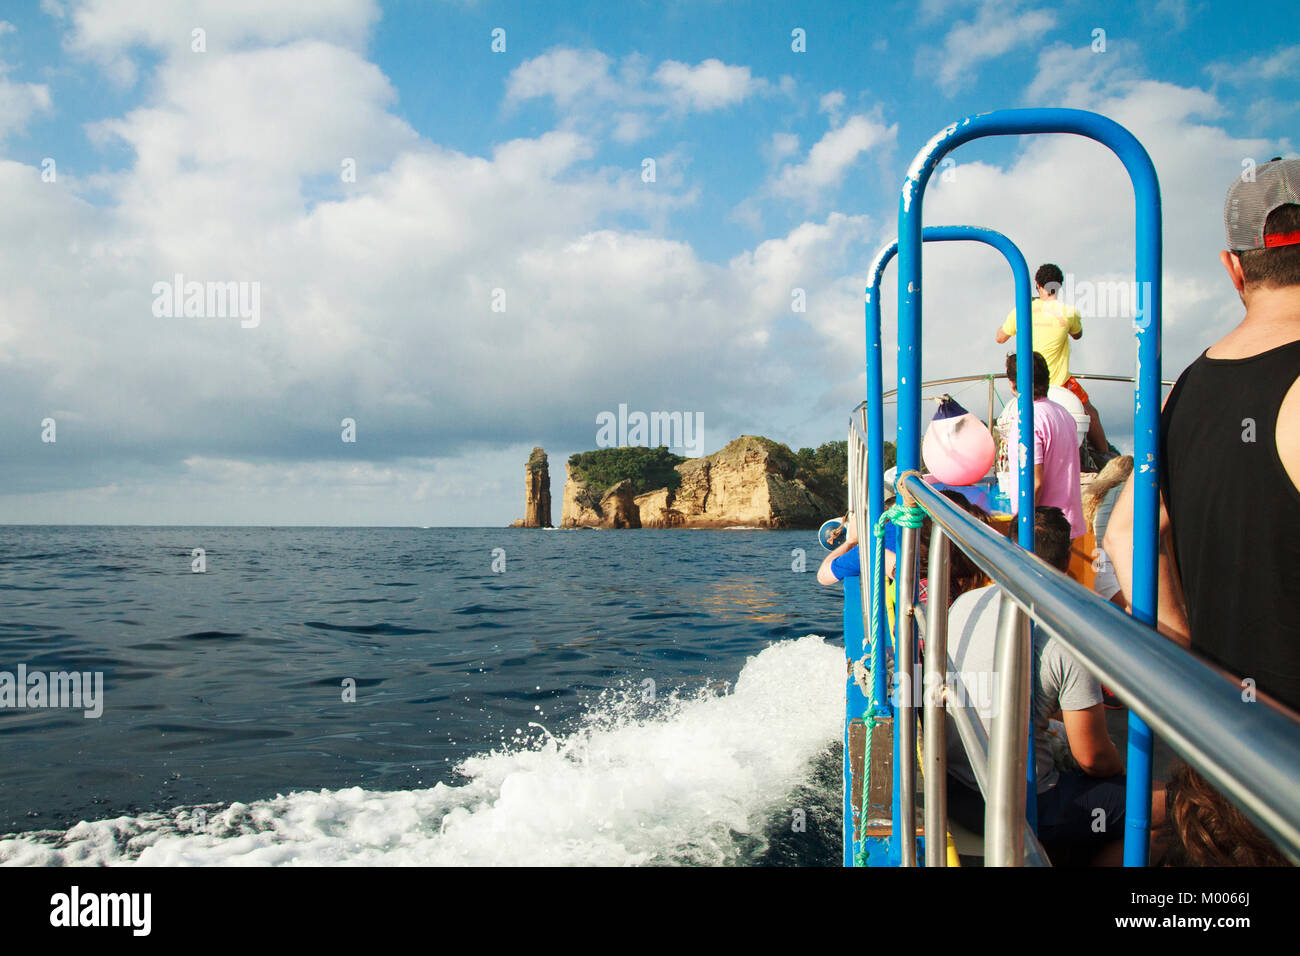 View from the boat taking tourist to islet of Vila franca do Campo from Sao Miguel, Azores, Portugal - Stock Image